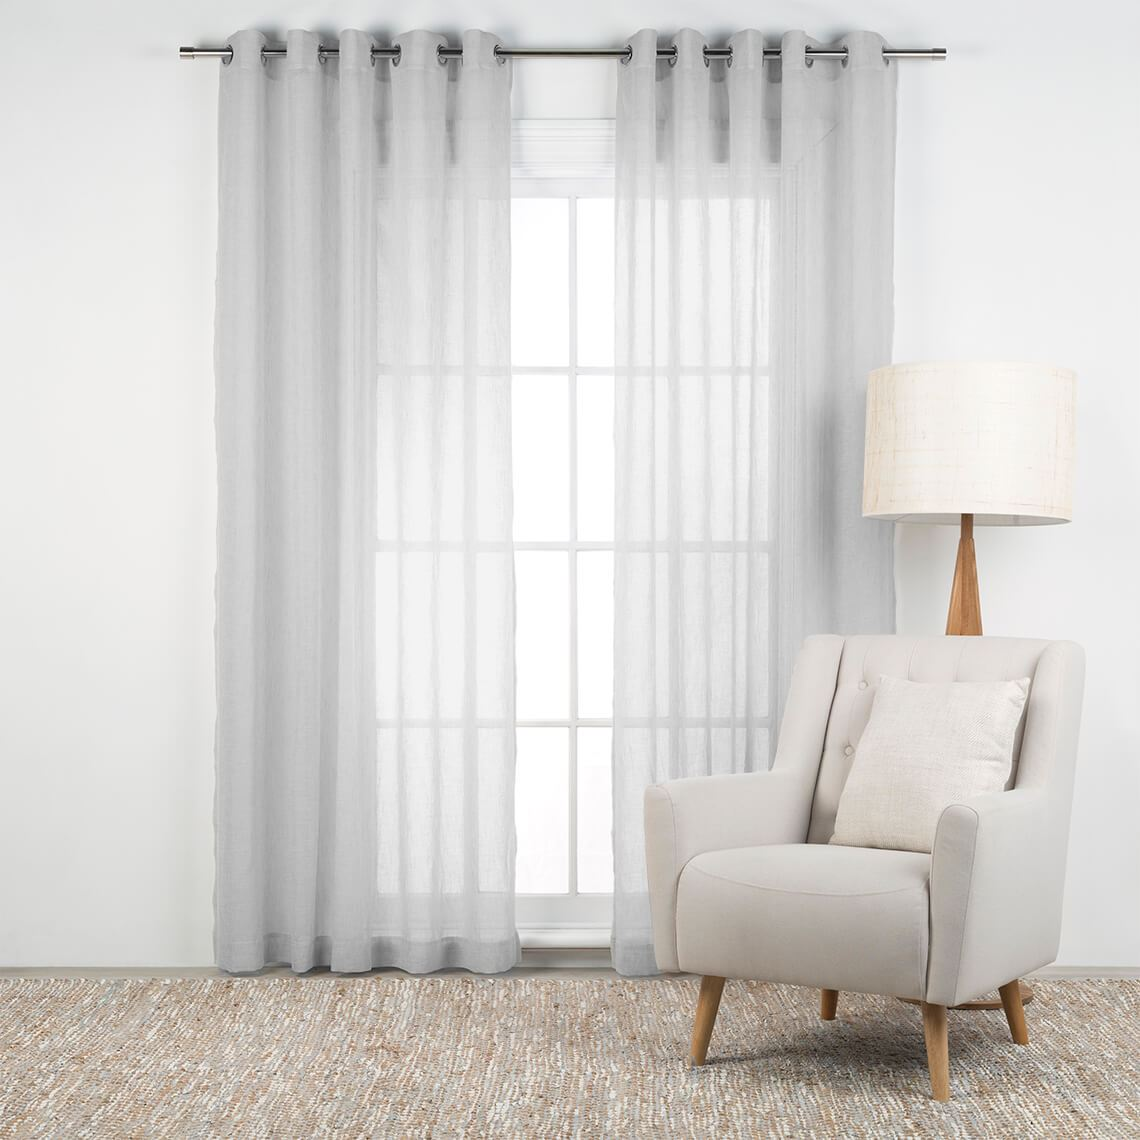 Bardwell Eyelet Curtain Size W 140cm x D 1cm x H 230cm in Silver Polyester/Stainless Steel Eyelets Freedom by Freedom, a Curtains for sale on Style Sourcebook